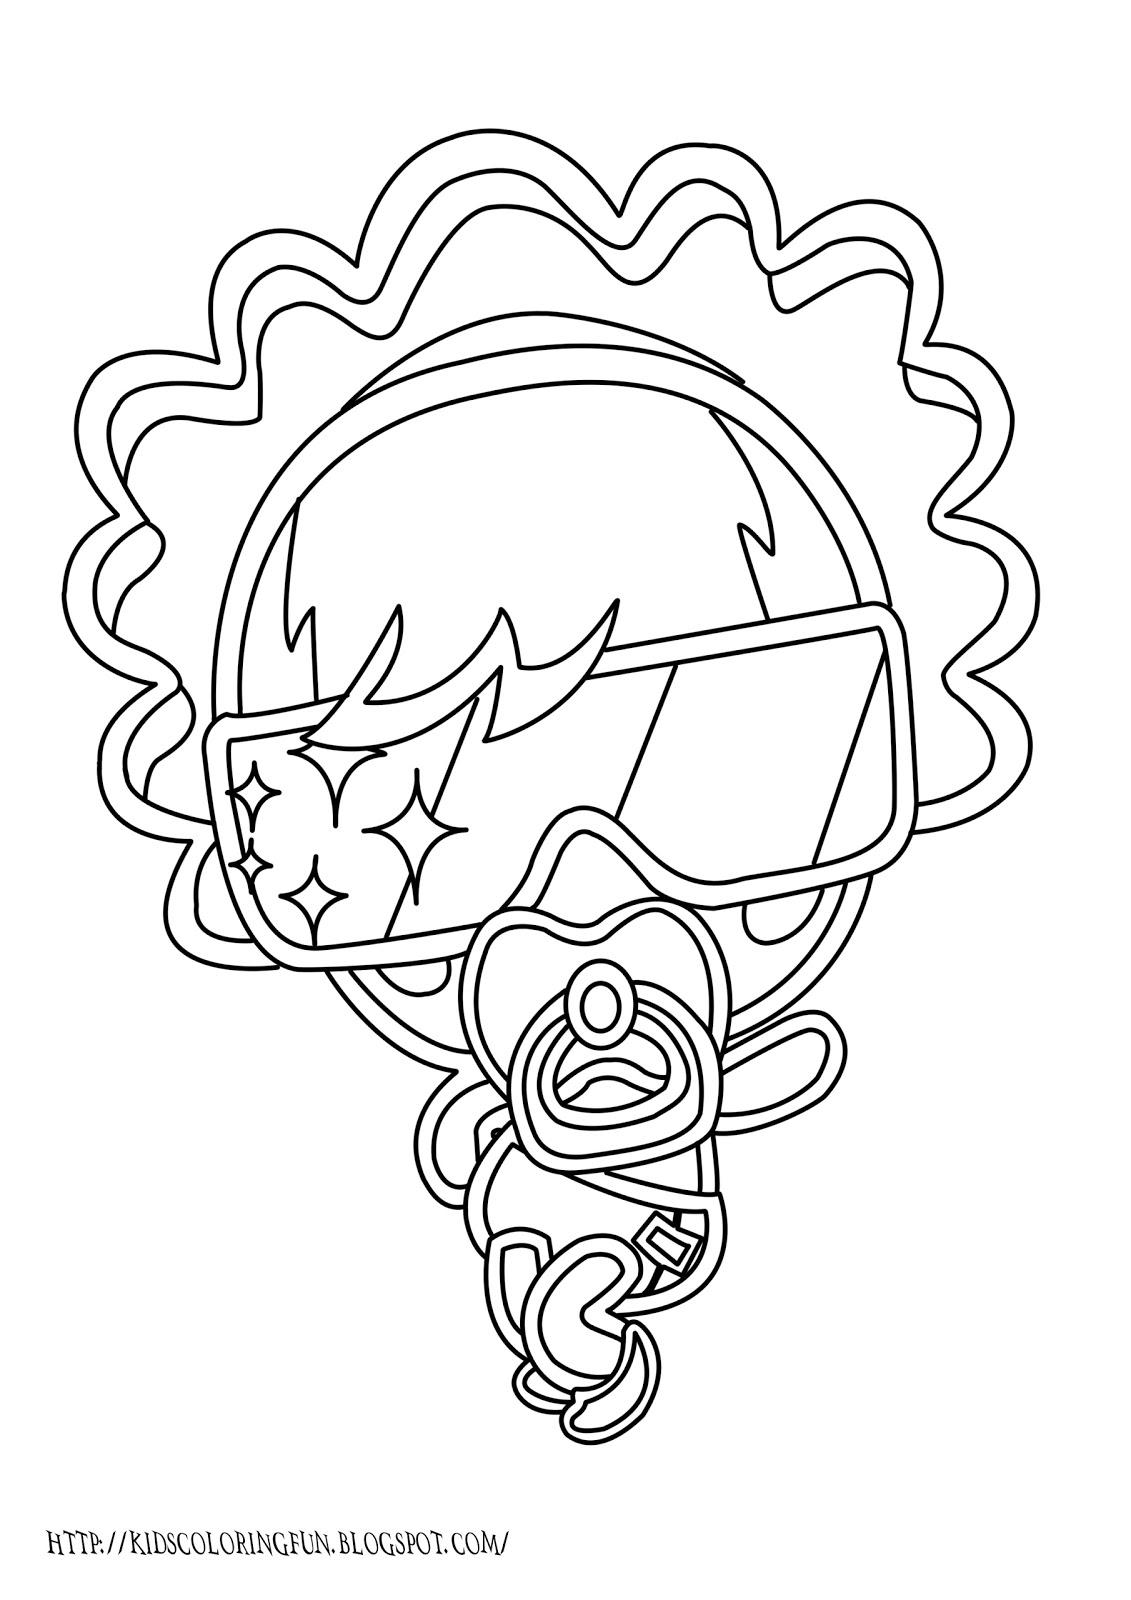 Moshling Monster Coloring Pages Lady Goo Goo Learn To Moshling Colouring Pages